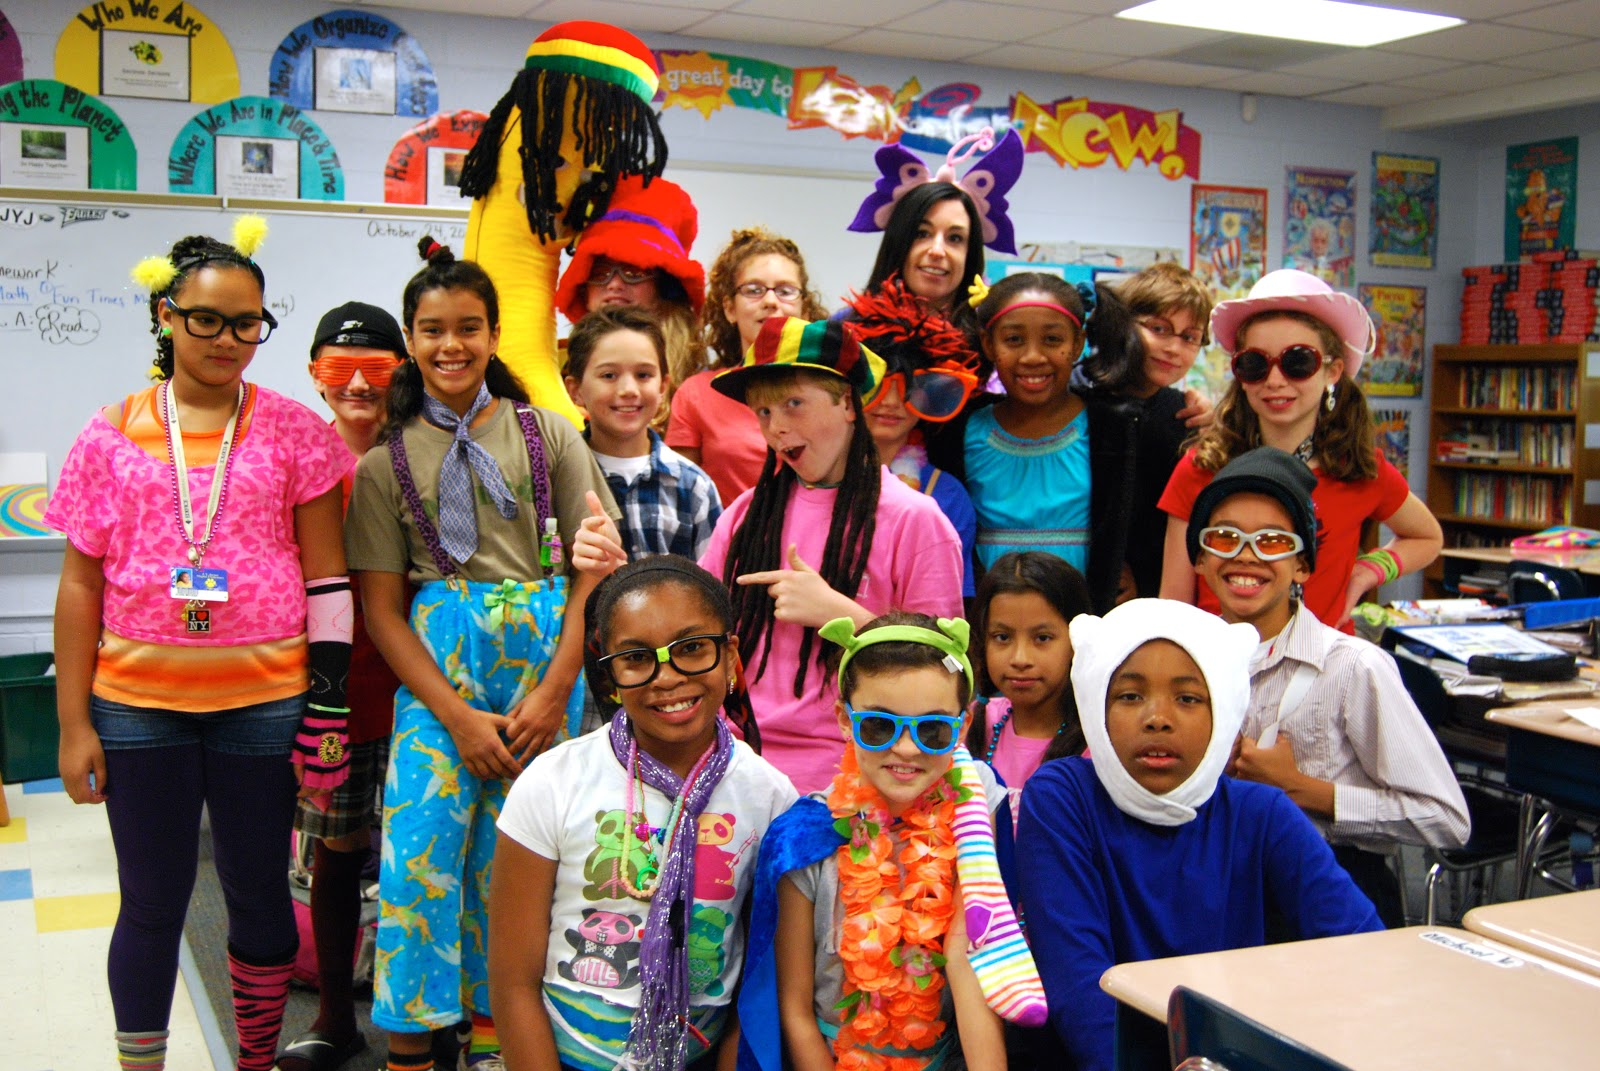 Tacky Day Ideas http://joyner5bell.blogspot.com/2012_10_01_archive.html